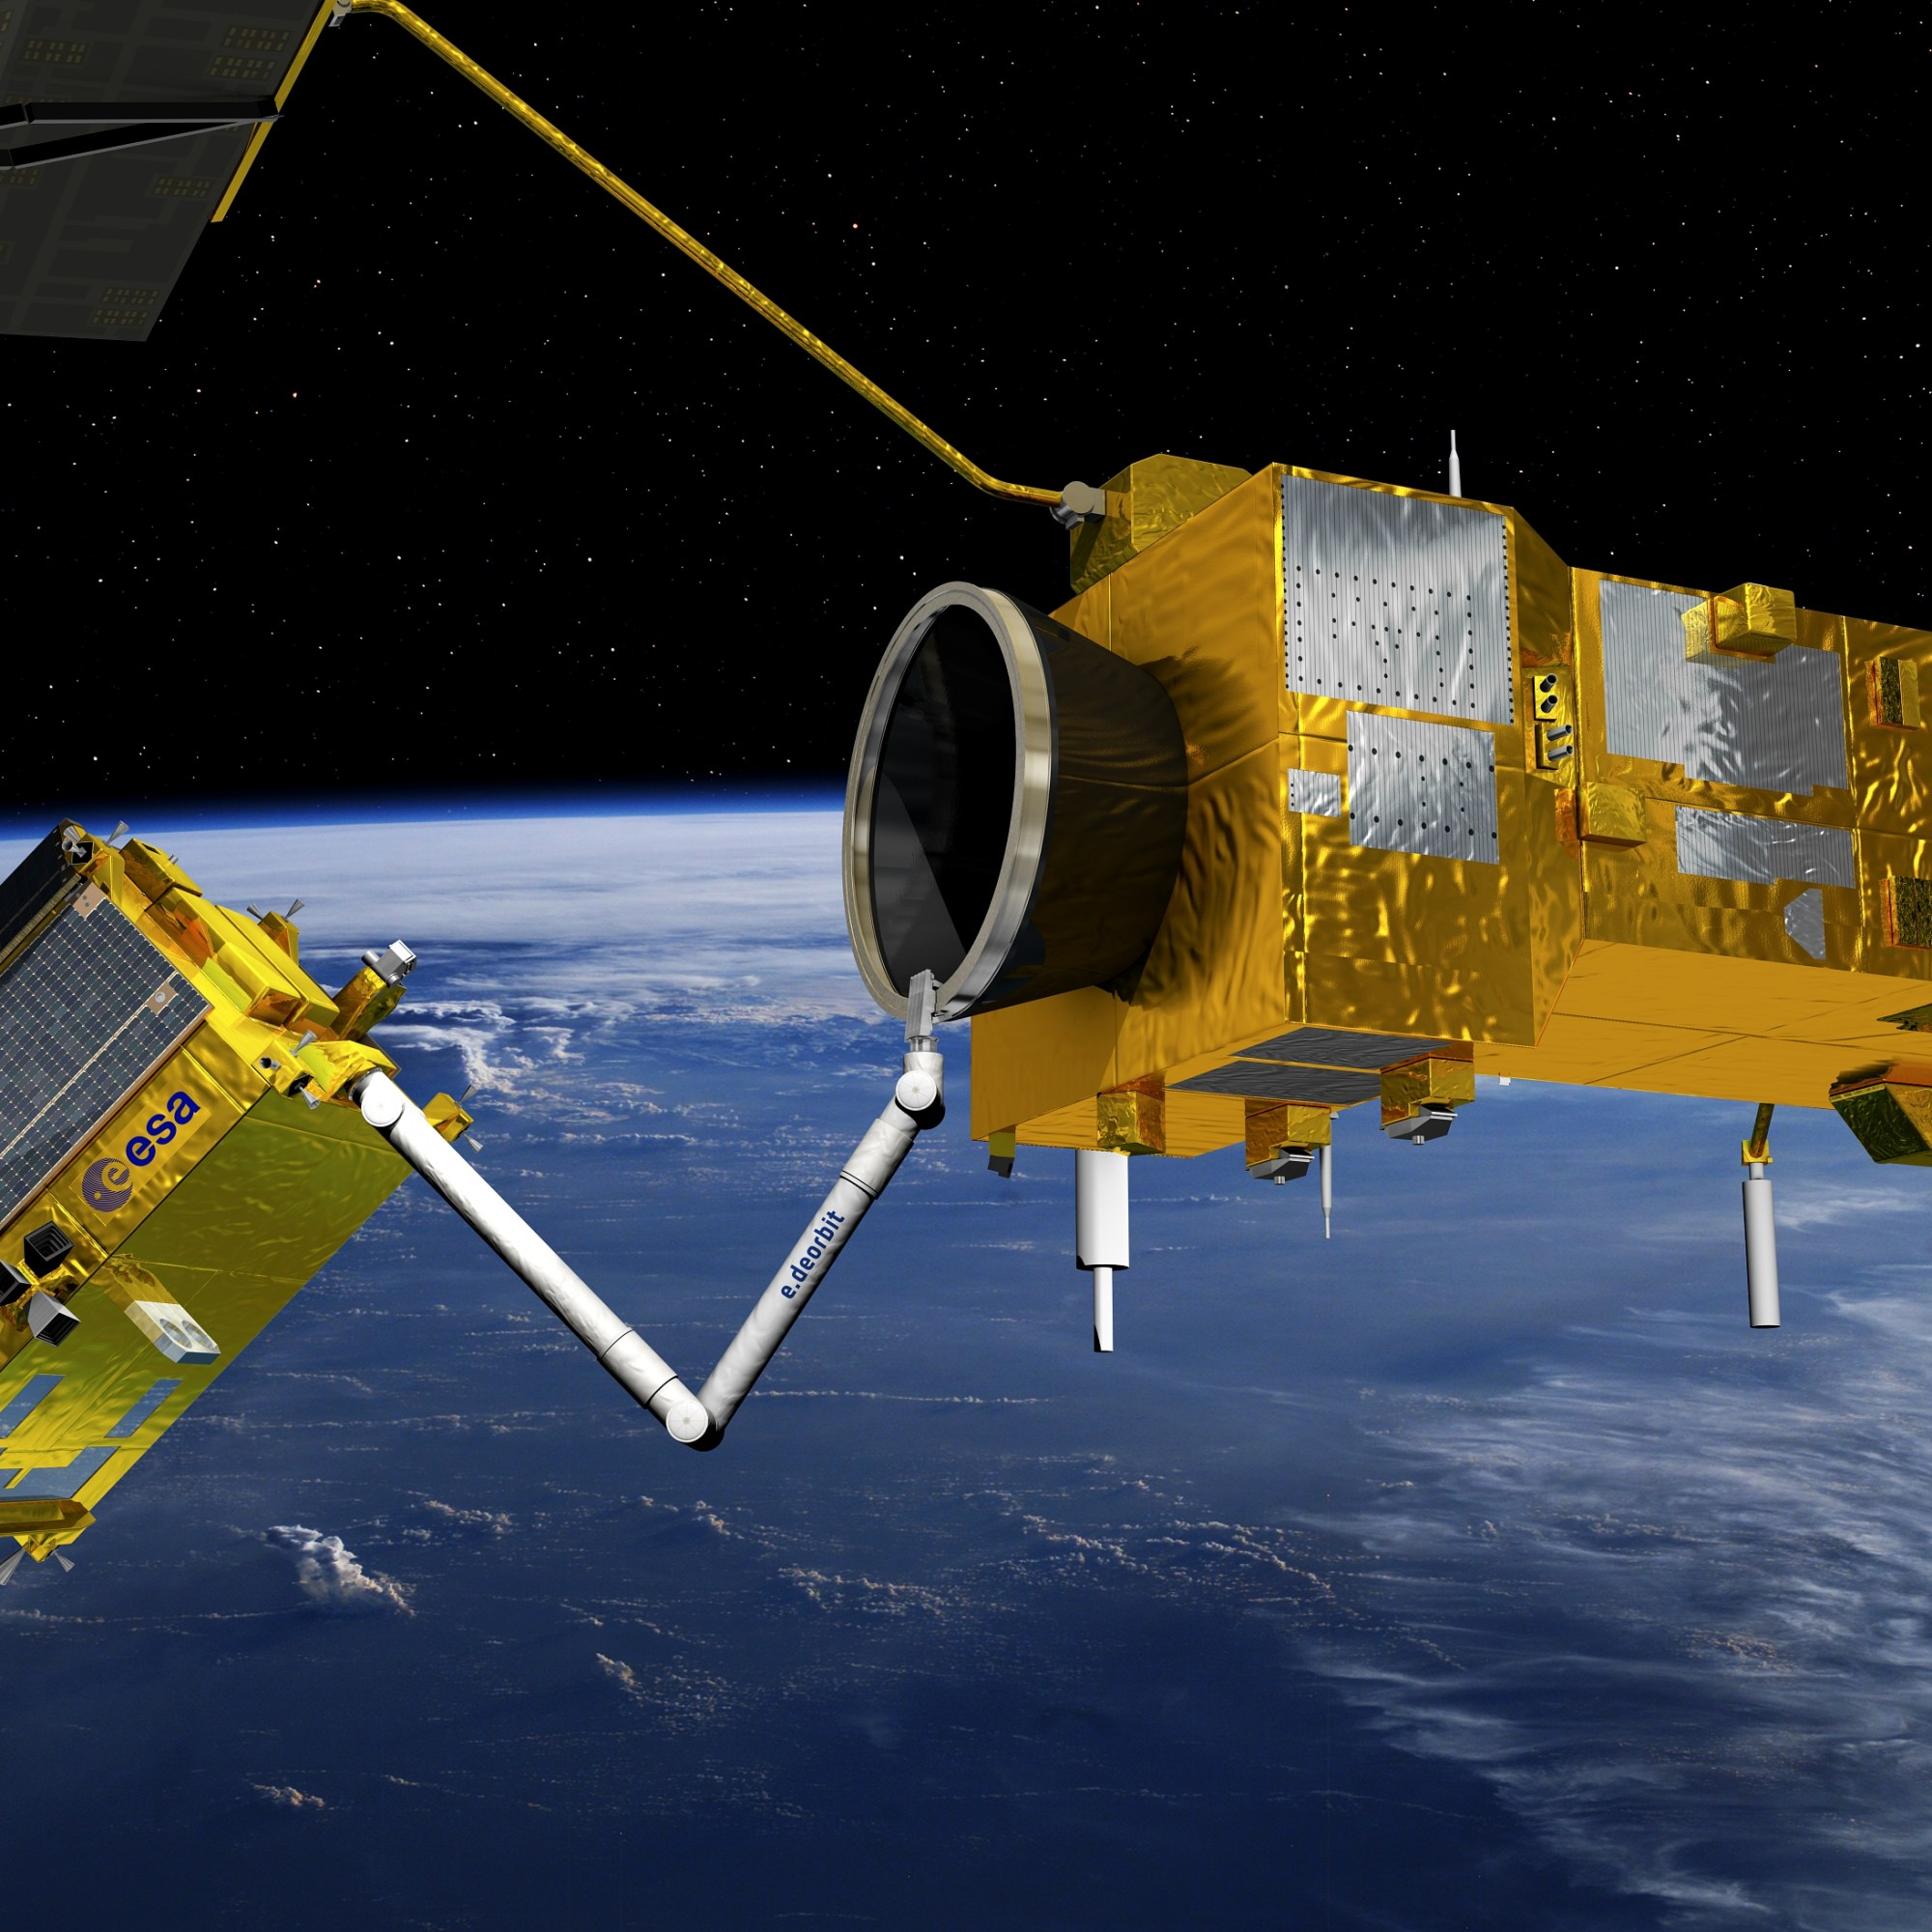 e.Deorbit is an ESA mission to remove a single large ESA-owned debris from orbit